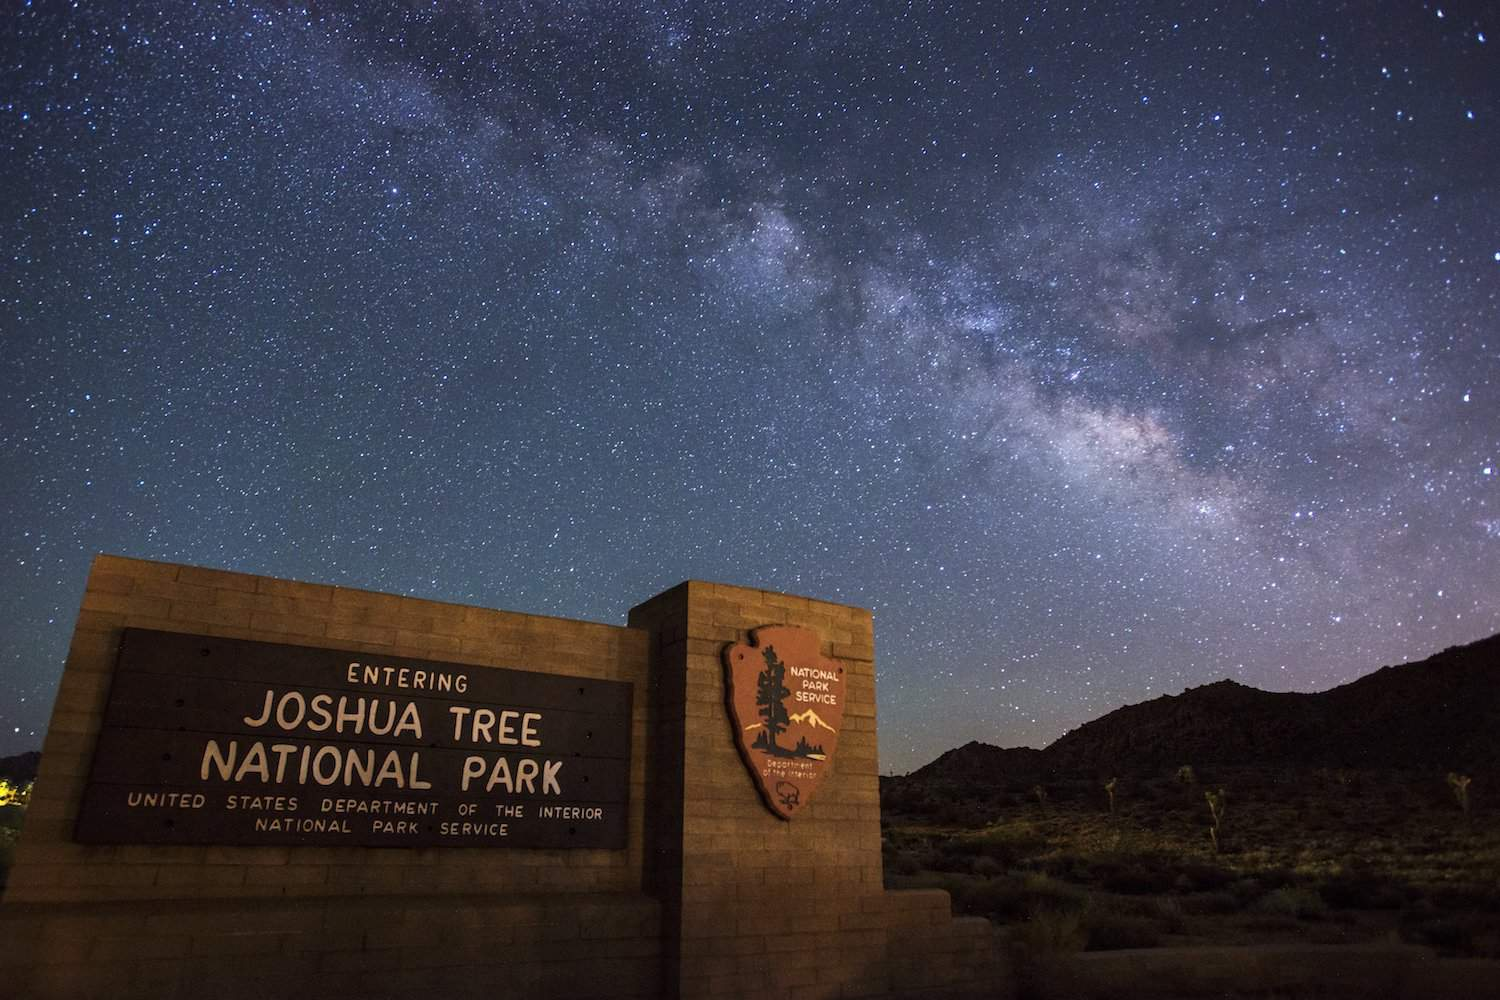 Stargazing in Joshua Tree National Park - NPS/Lian Law